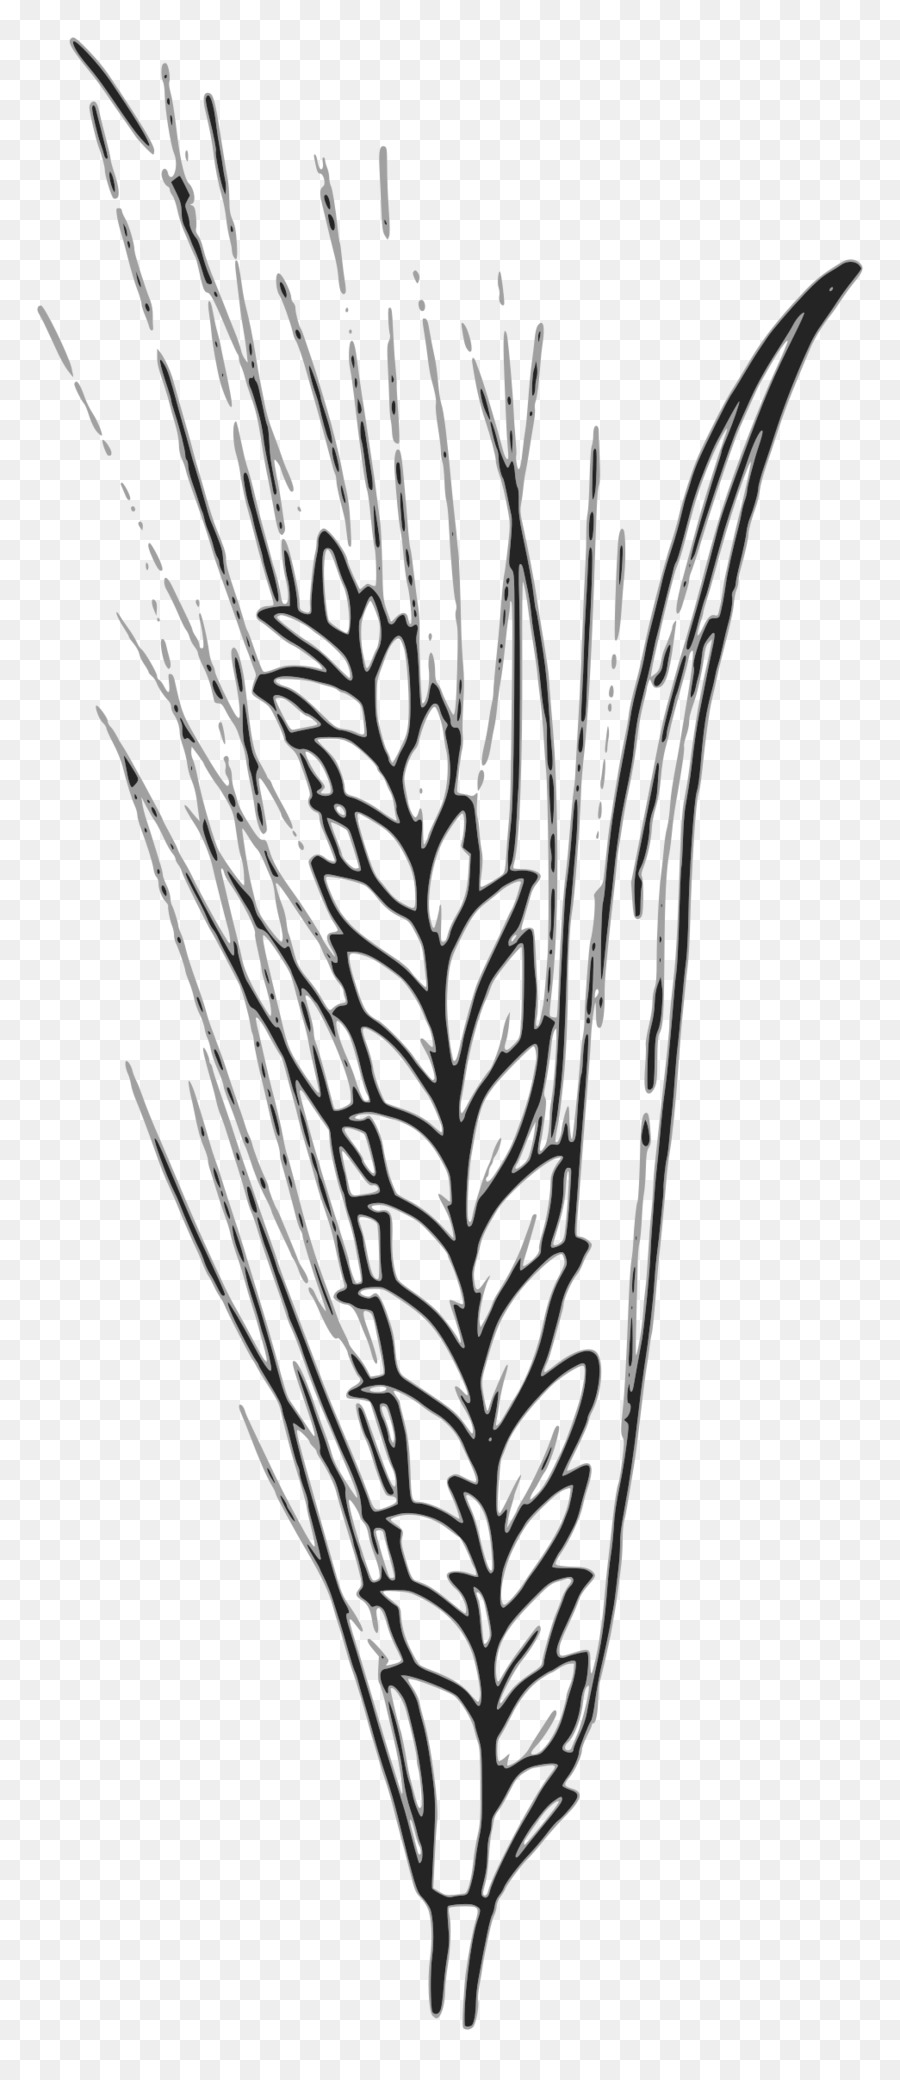 Wheat outline clipart library Family Tree Background clipart - Wheat, Plant, Leaf ... library